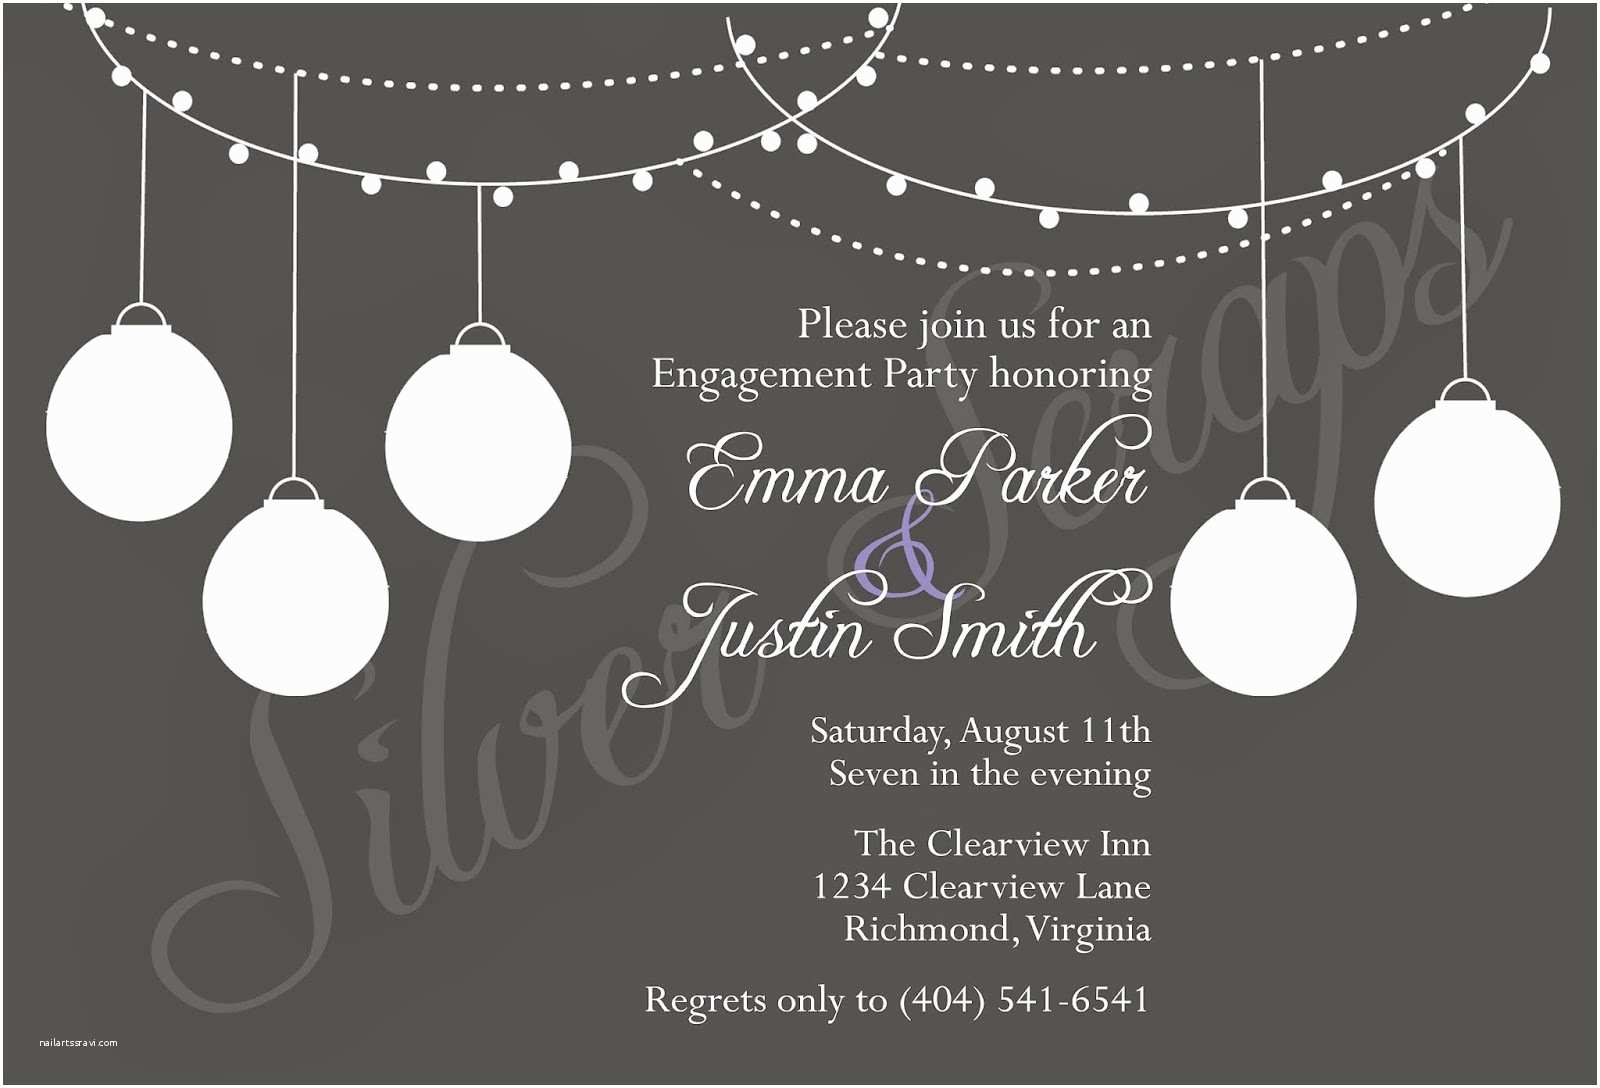 All White Party Invitations White Party Invitations